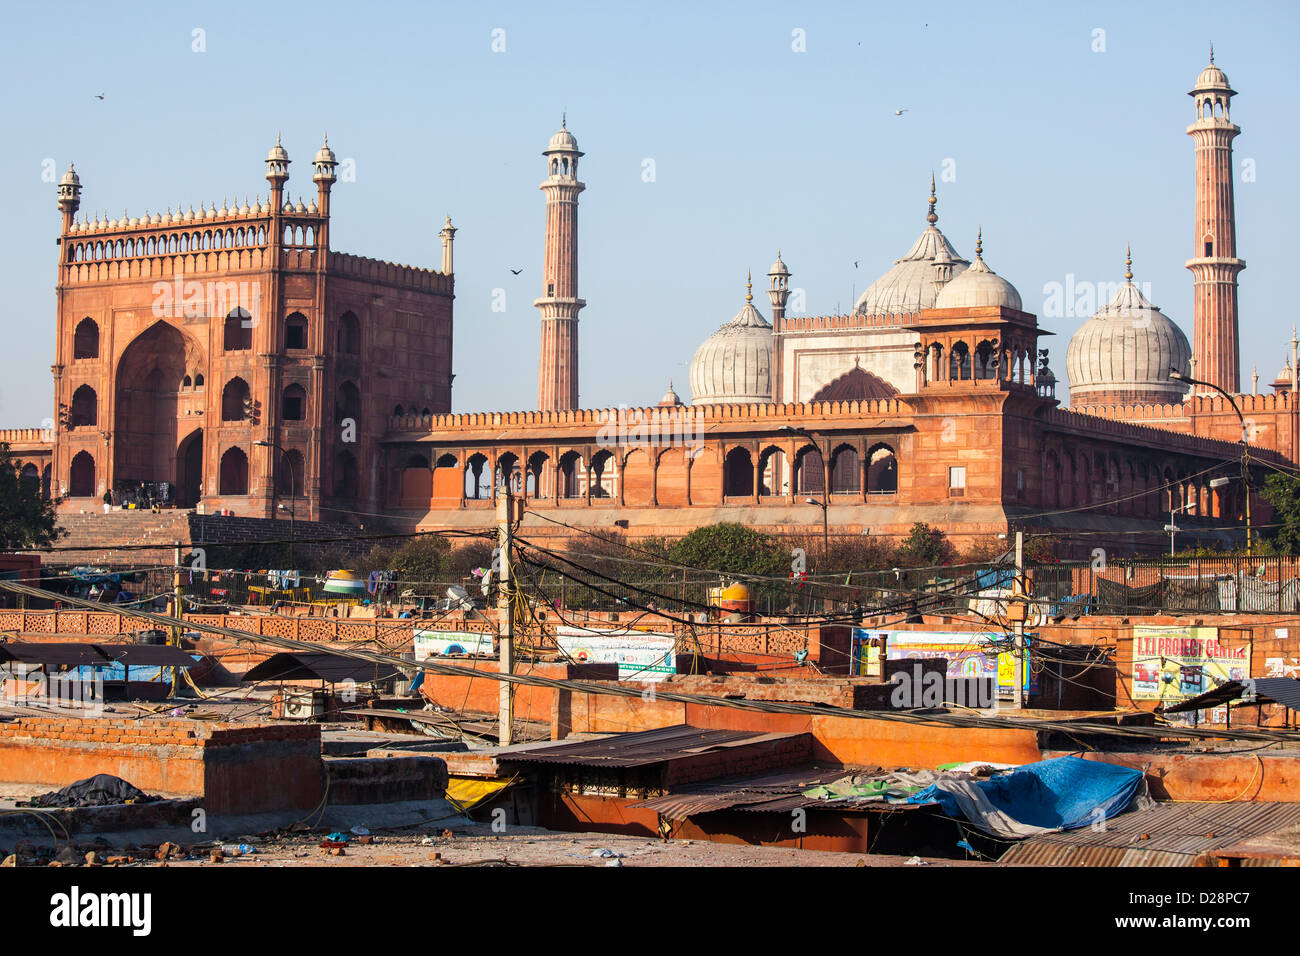 The Friday Mosque or Jama Masjid in Delhi India - Stock Image